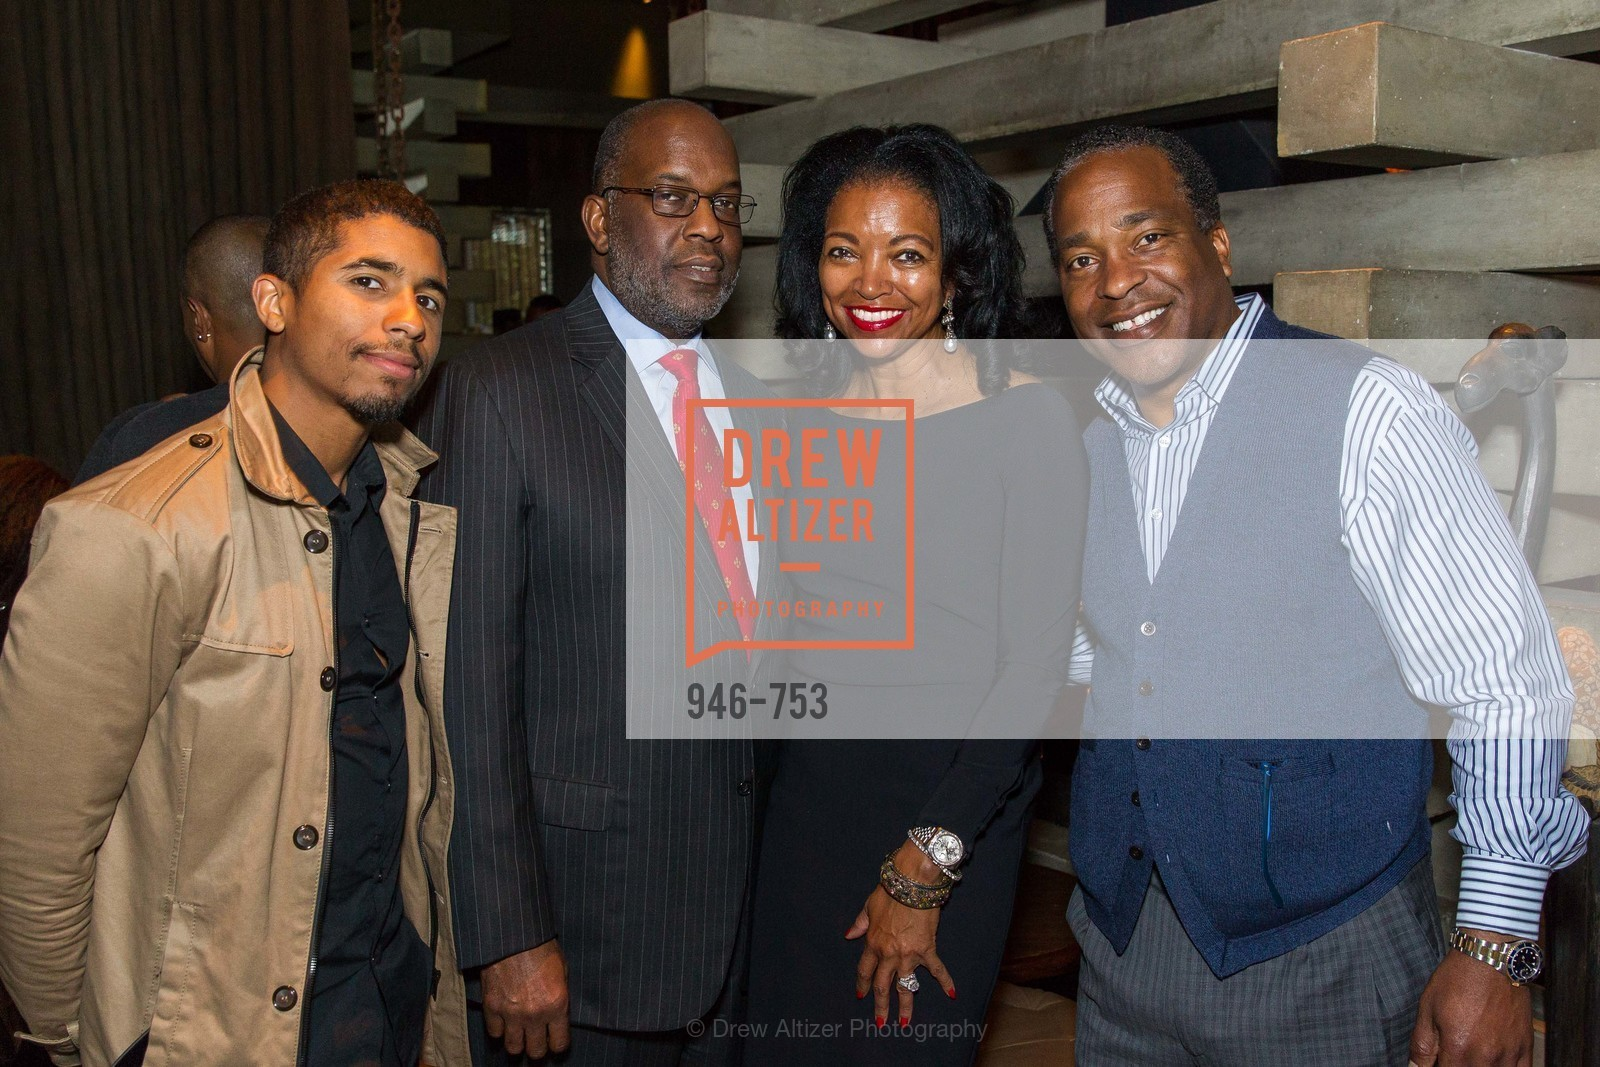 Chris Lyons, Bernard Tyson, Denise Bradley Tyson, INSPIRED LUXE Launch Party Hosted by Denise Bradley Tyson, US, Matrix Fillmore, May 28th, 2015,Drew Altizer, Drew Altizer Photography, full-service agency, private events, San Francisco photographer, photographer california